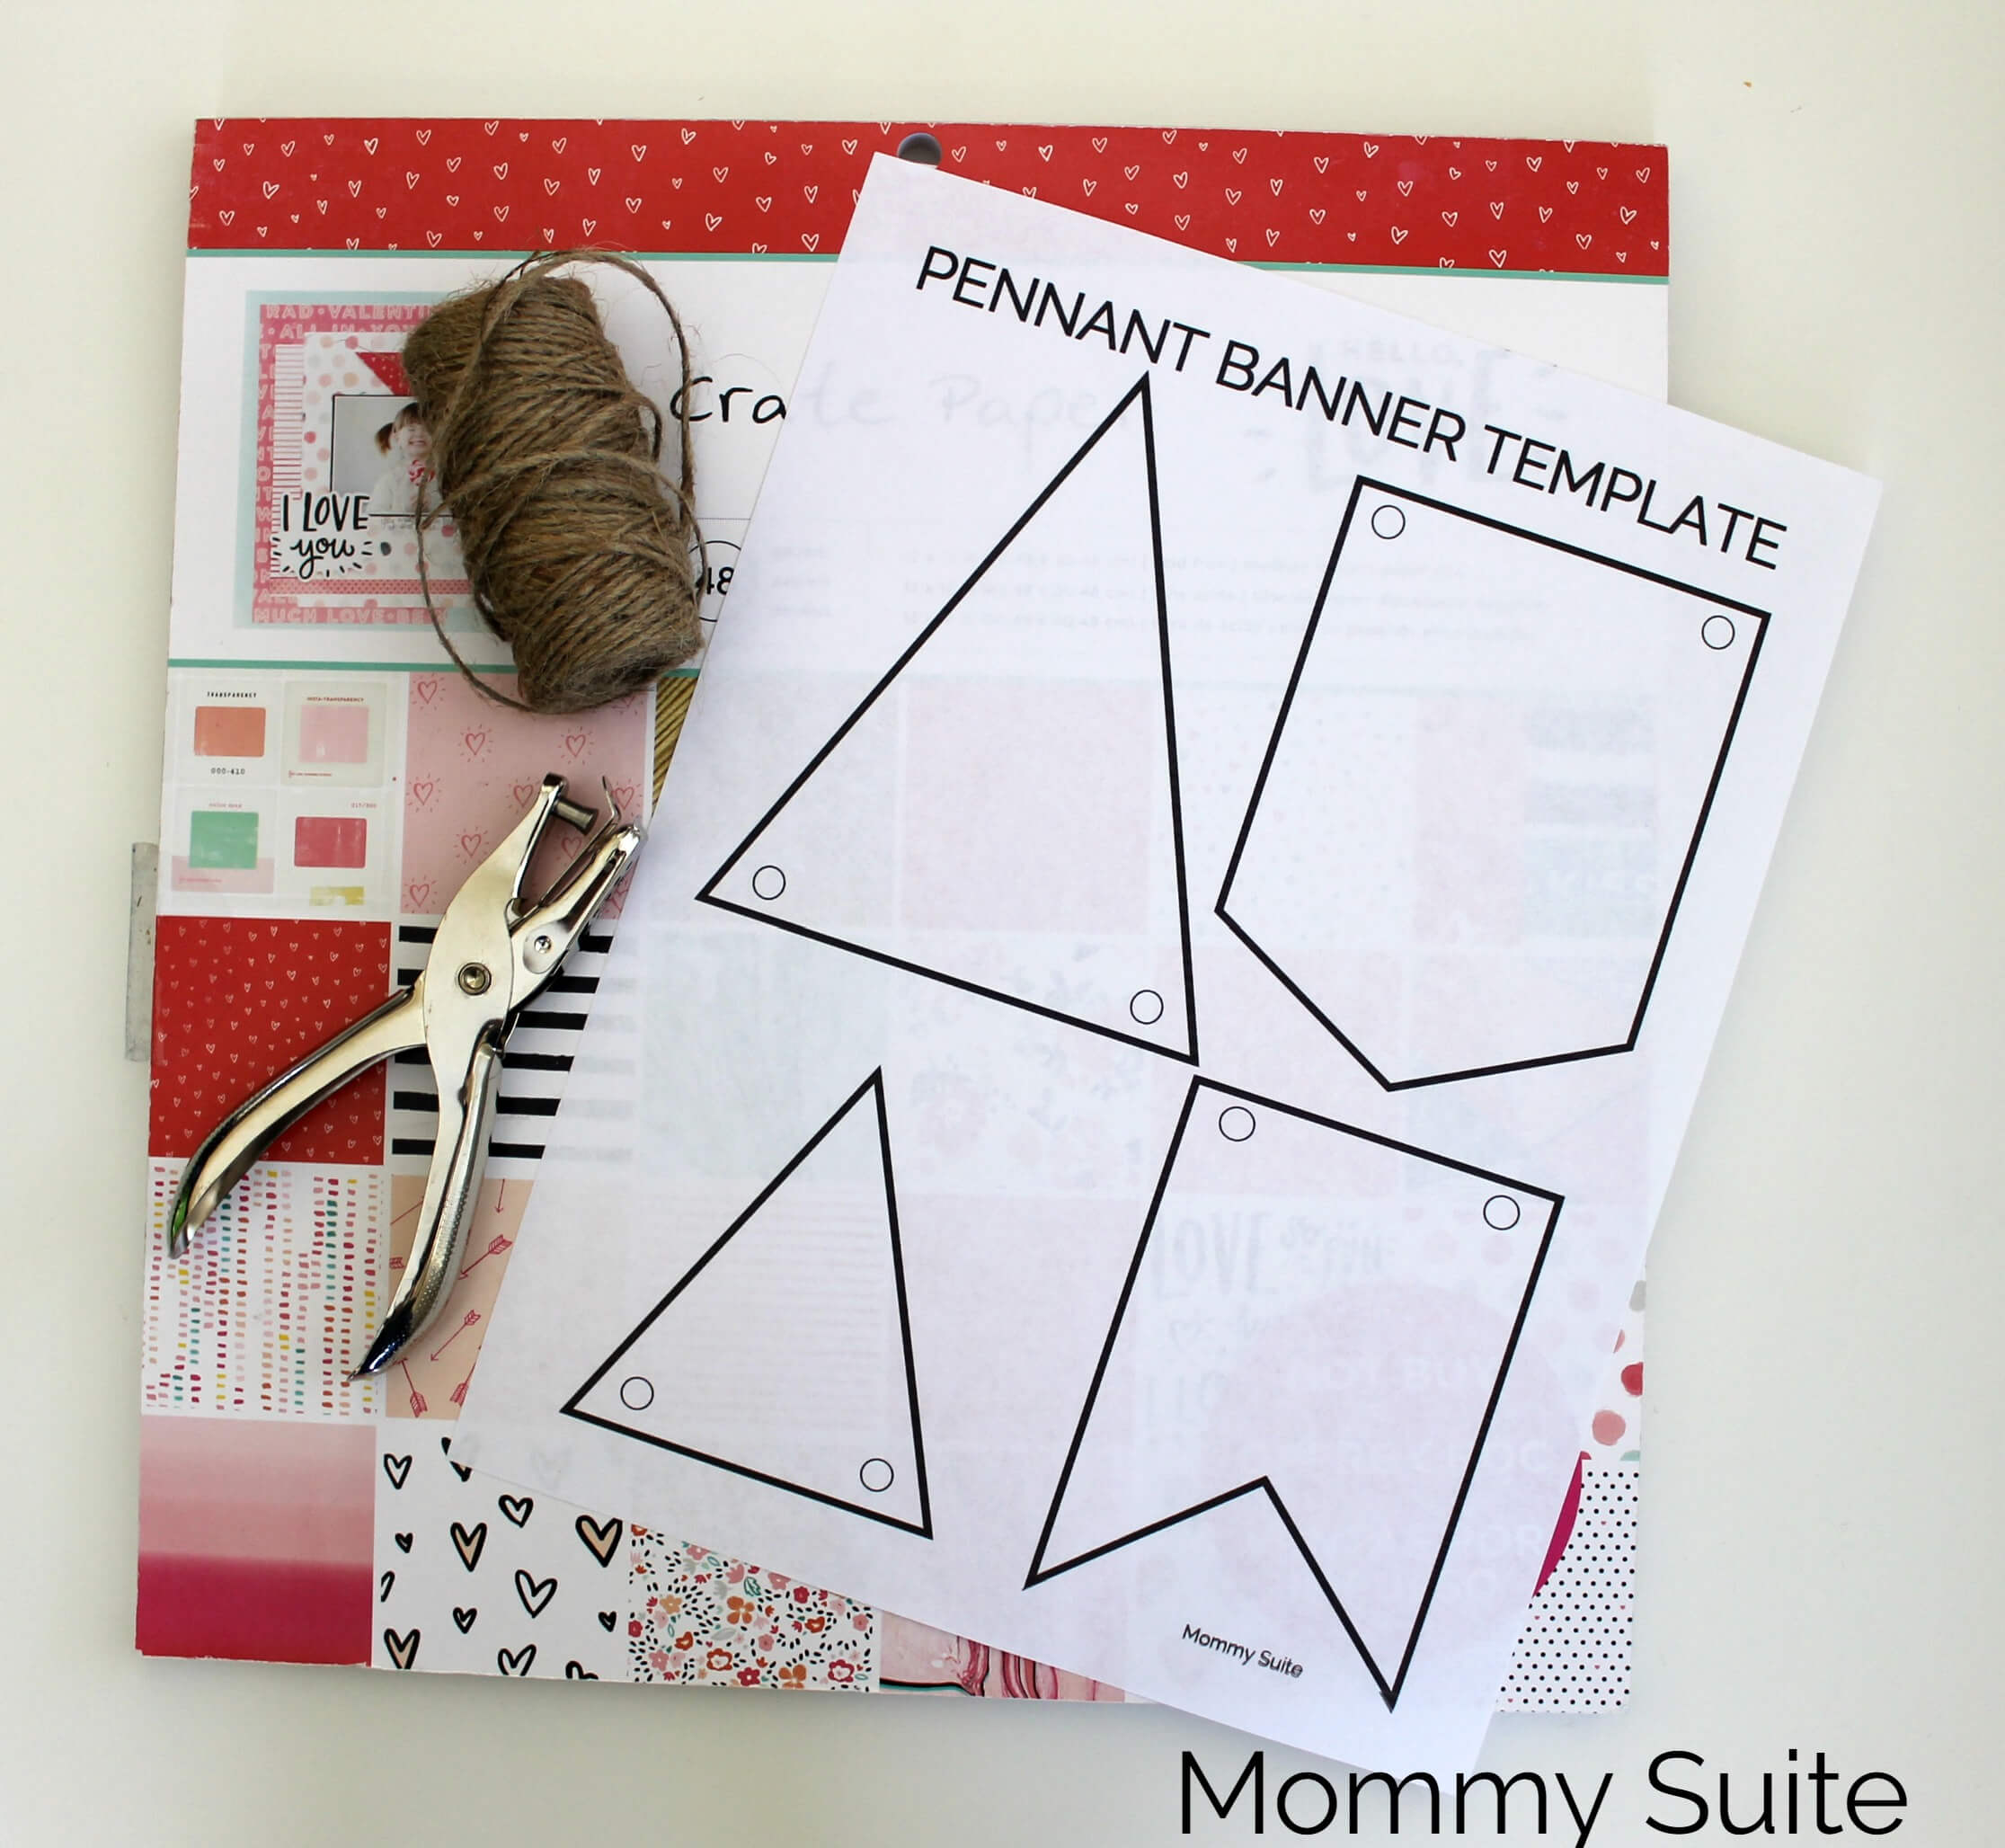 Diy Paper Pennant Banner (W/ Free Template) - Mommy Suite for Homemade Banner Template